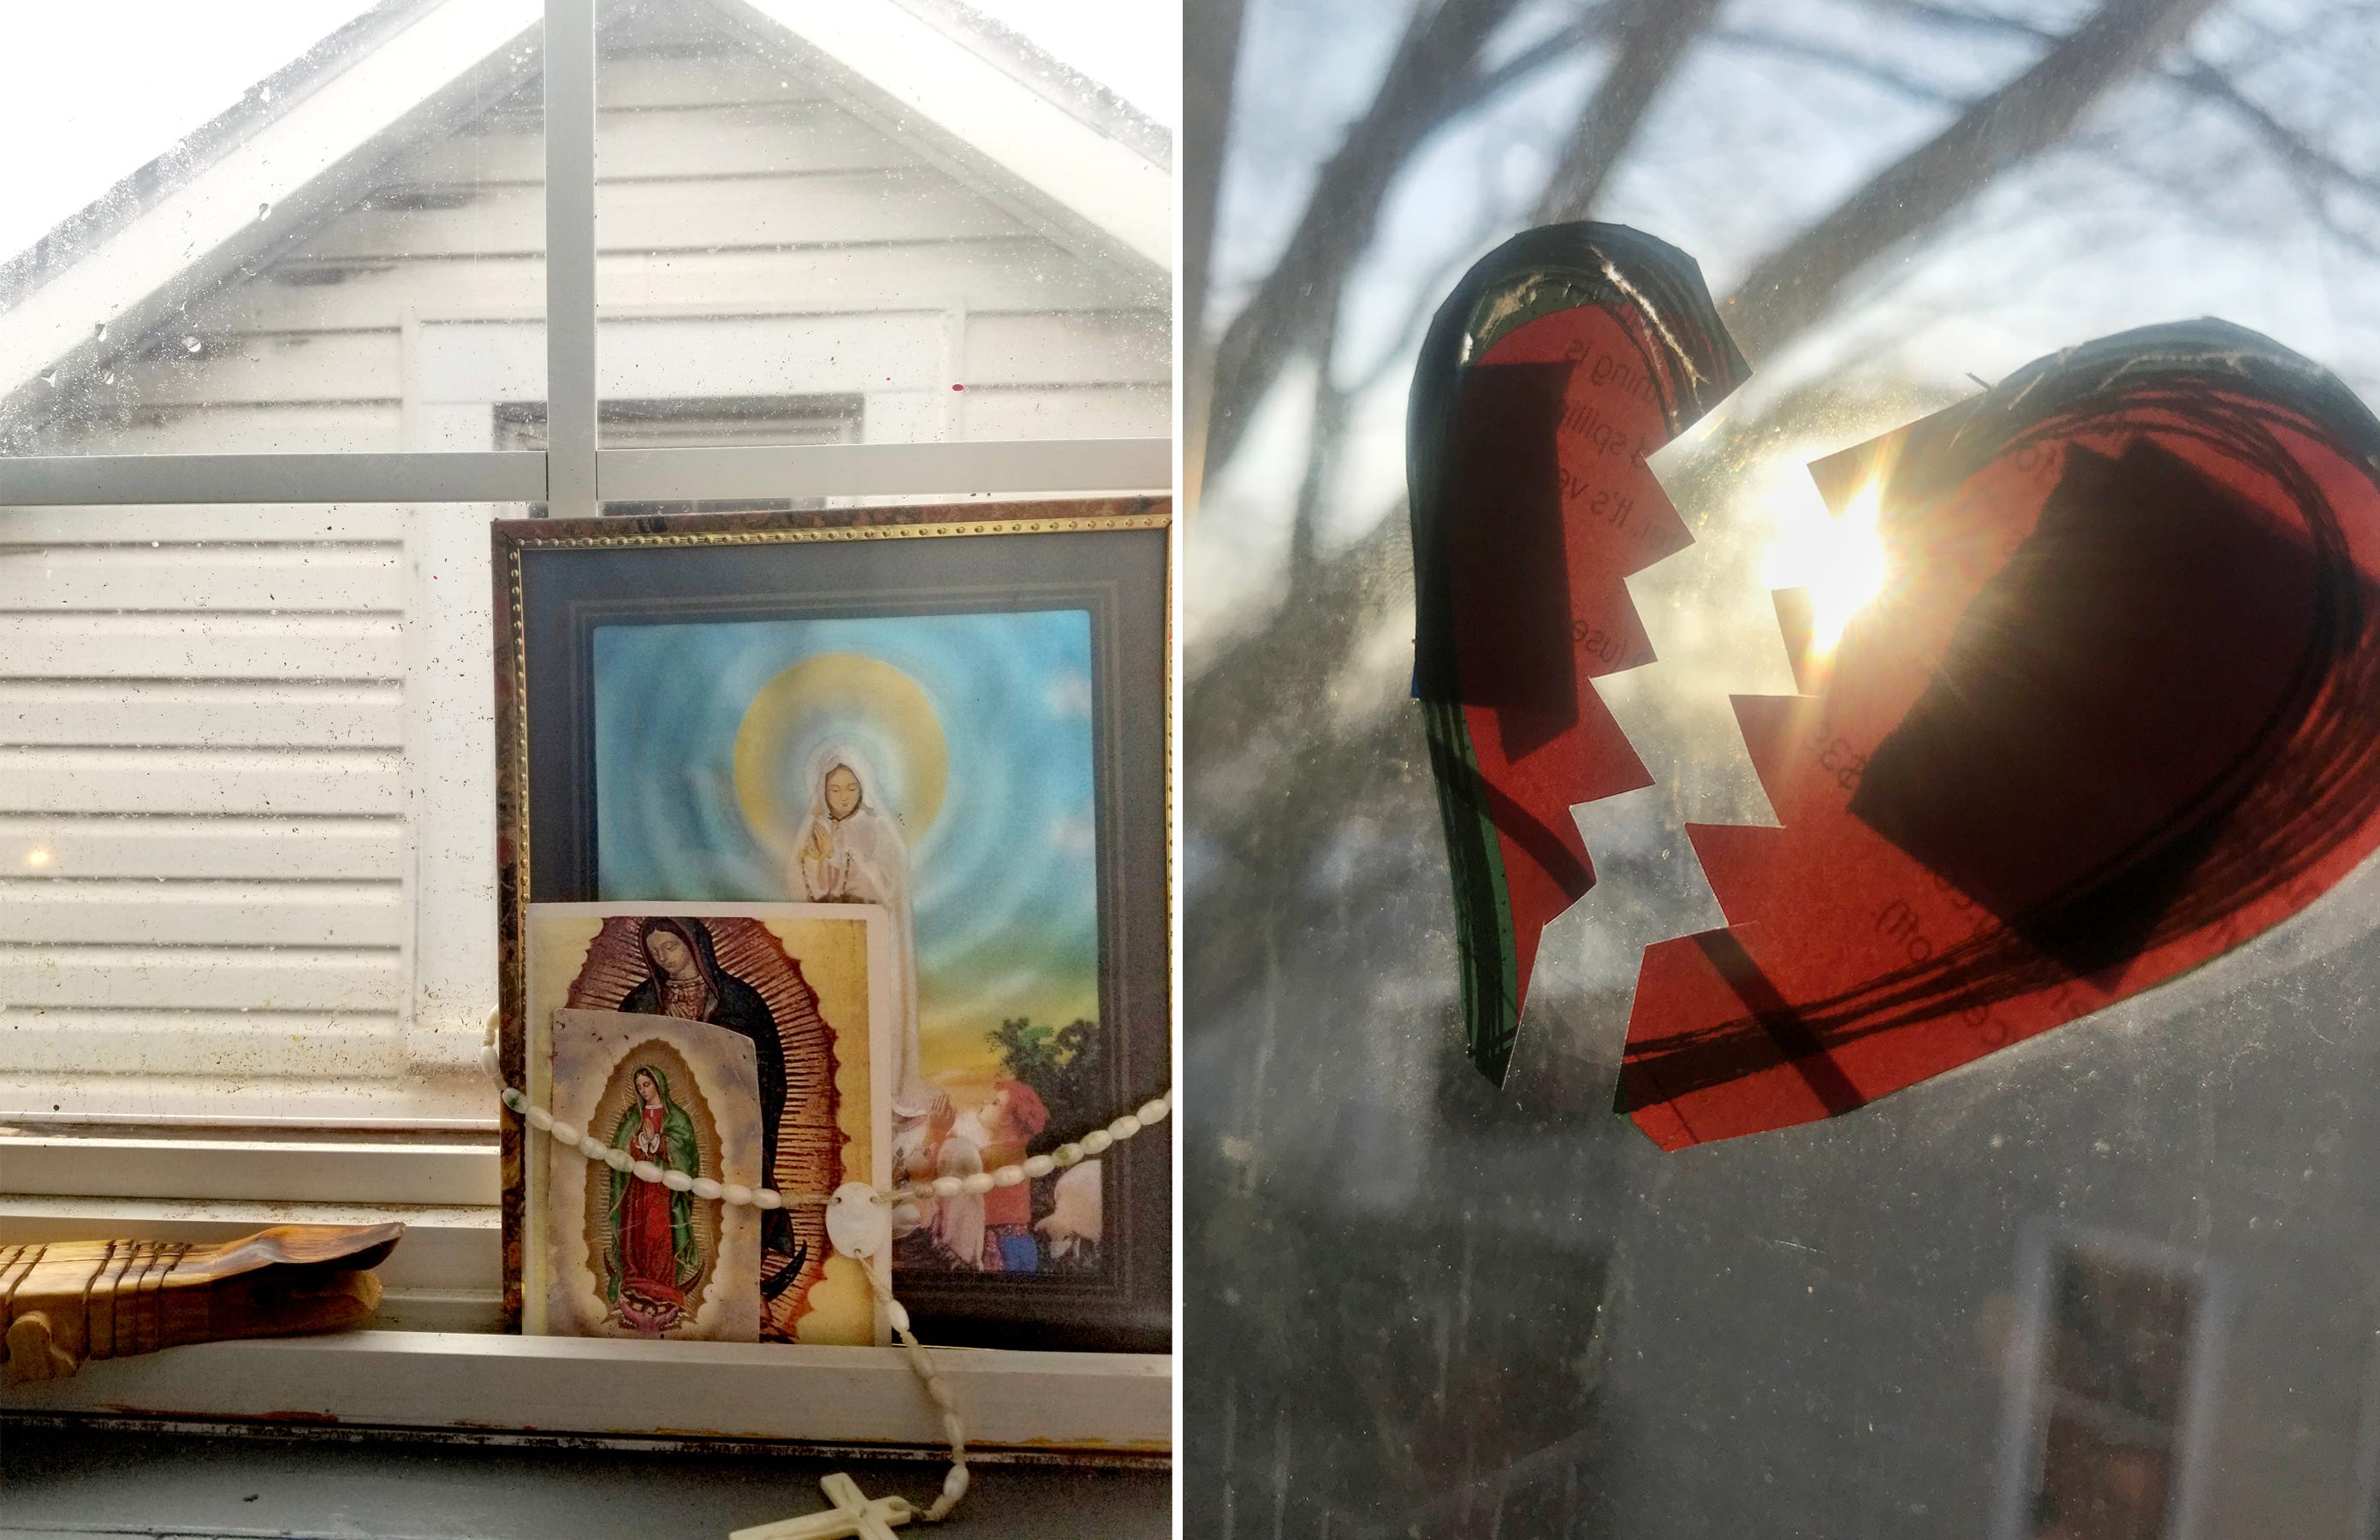 Left: When I got my new bedroom the first thing I put there was a picture of the Virgin Mary. The Virgin Mary is very important to me because it gives me faith and protection.  Right: The rising sun shining through my bedroom window  illuminates a picture of a heart that I cut out of a magazine on April 6, 2020. I wanted to portray the sunset in a different way so I added this heart and broke it in half. This photograph could be anything you interpret to be. If you don't pay attention to what is around you, you'll feel alone or maybe that if you only focus on the darkness you can't focus on the light.